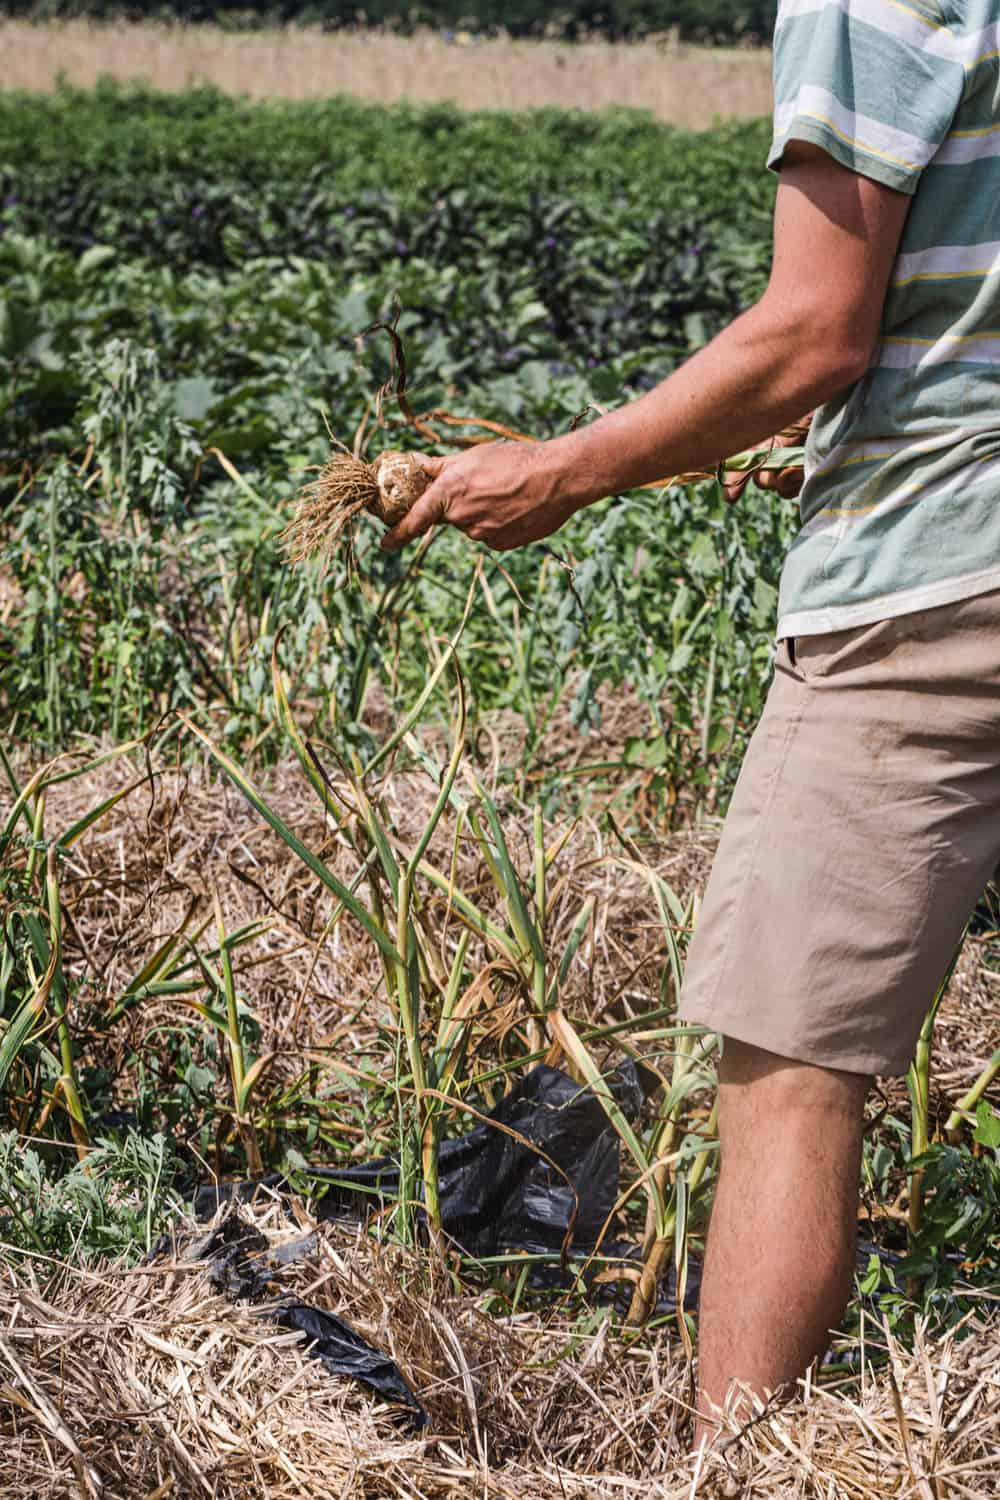 Garlic harvest happening in the Amber Waves Farm.